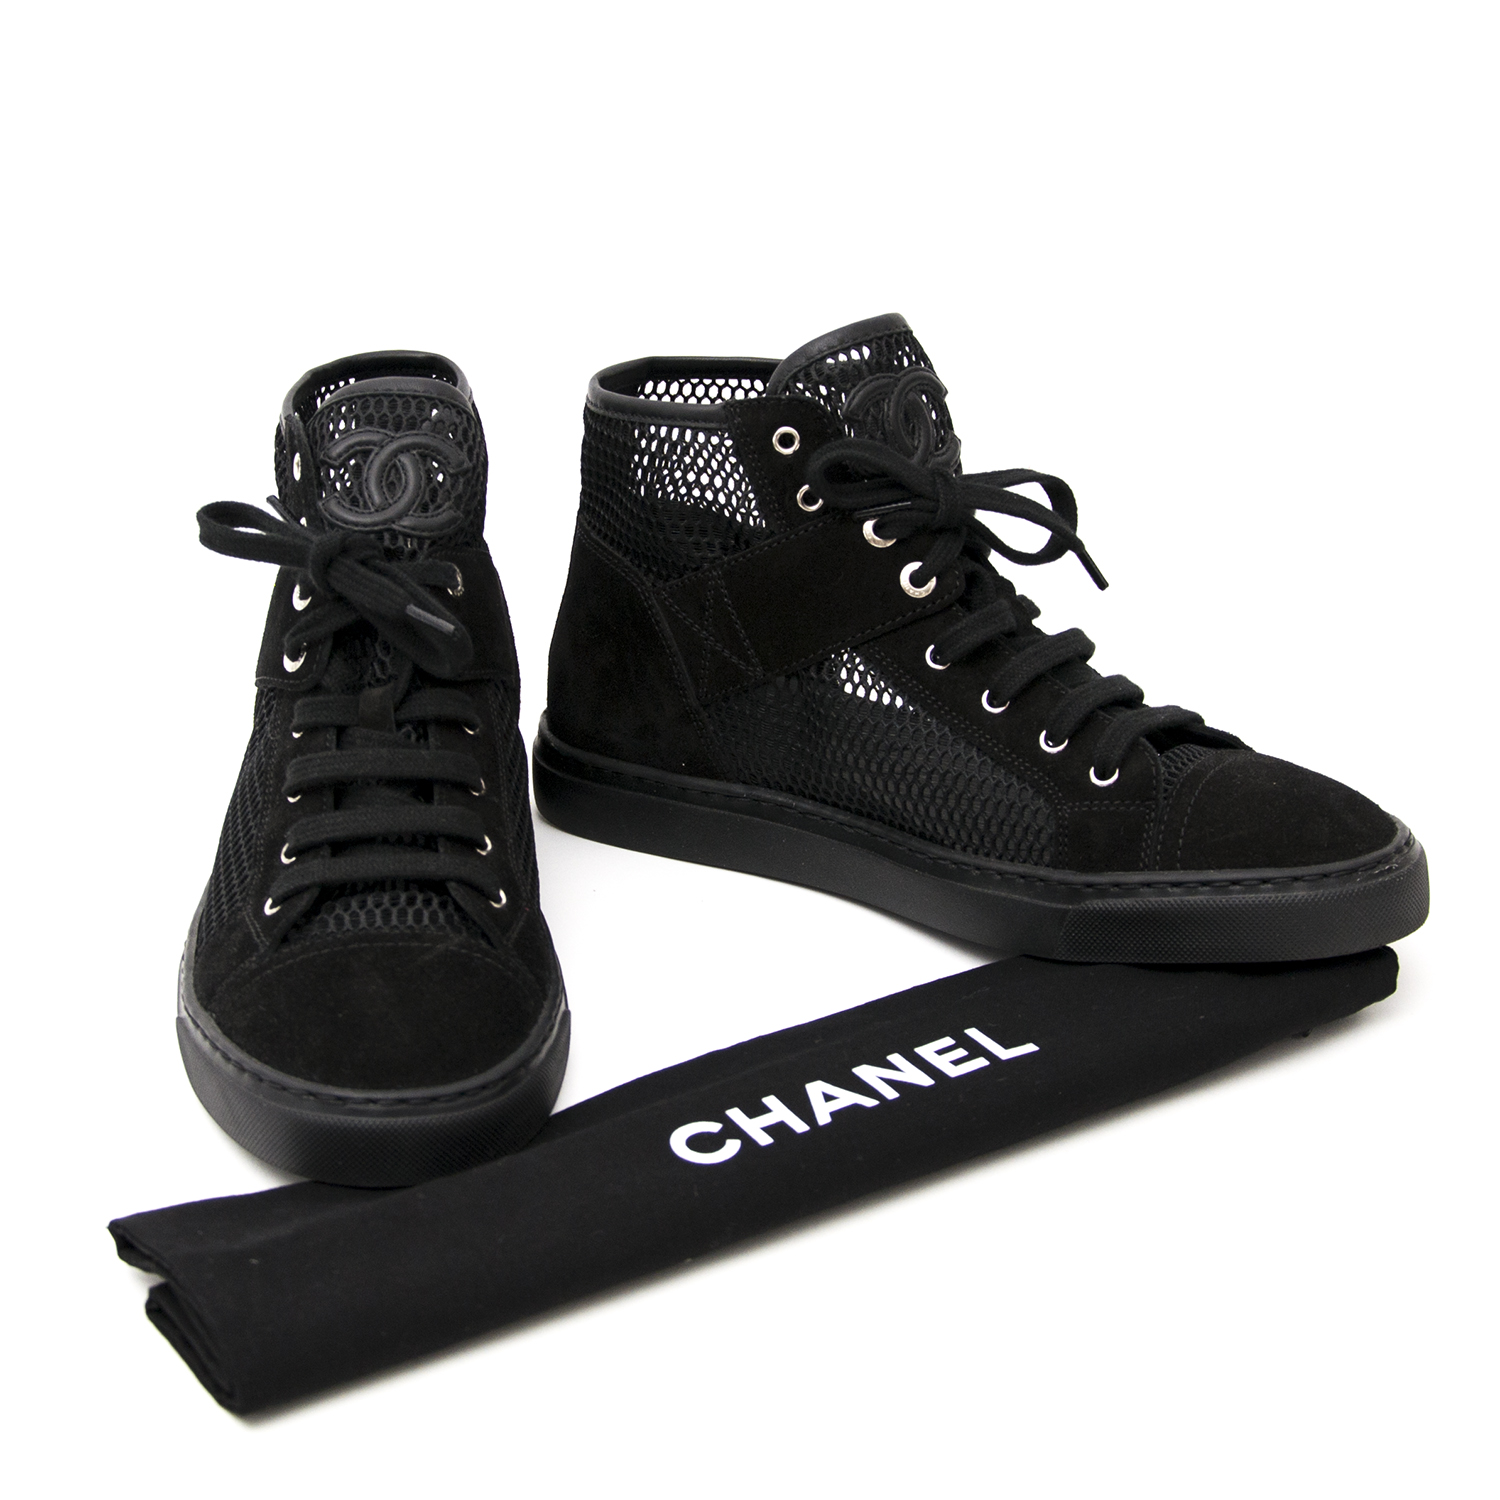 shop safe online your designer sneakers New Chanel Black Suede Mesh High-Top Lace-Up Sneakers